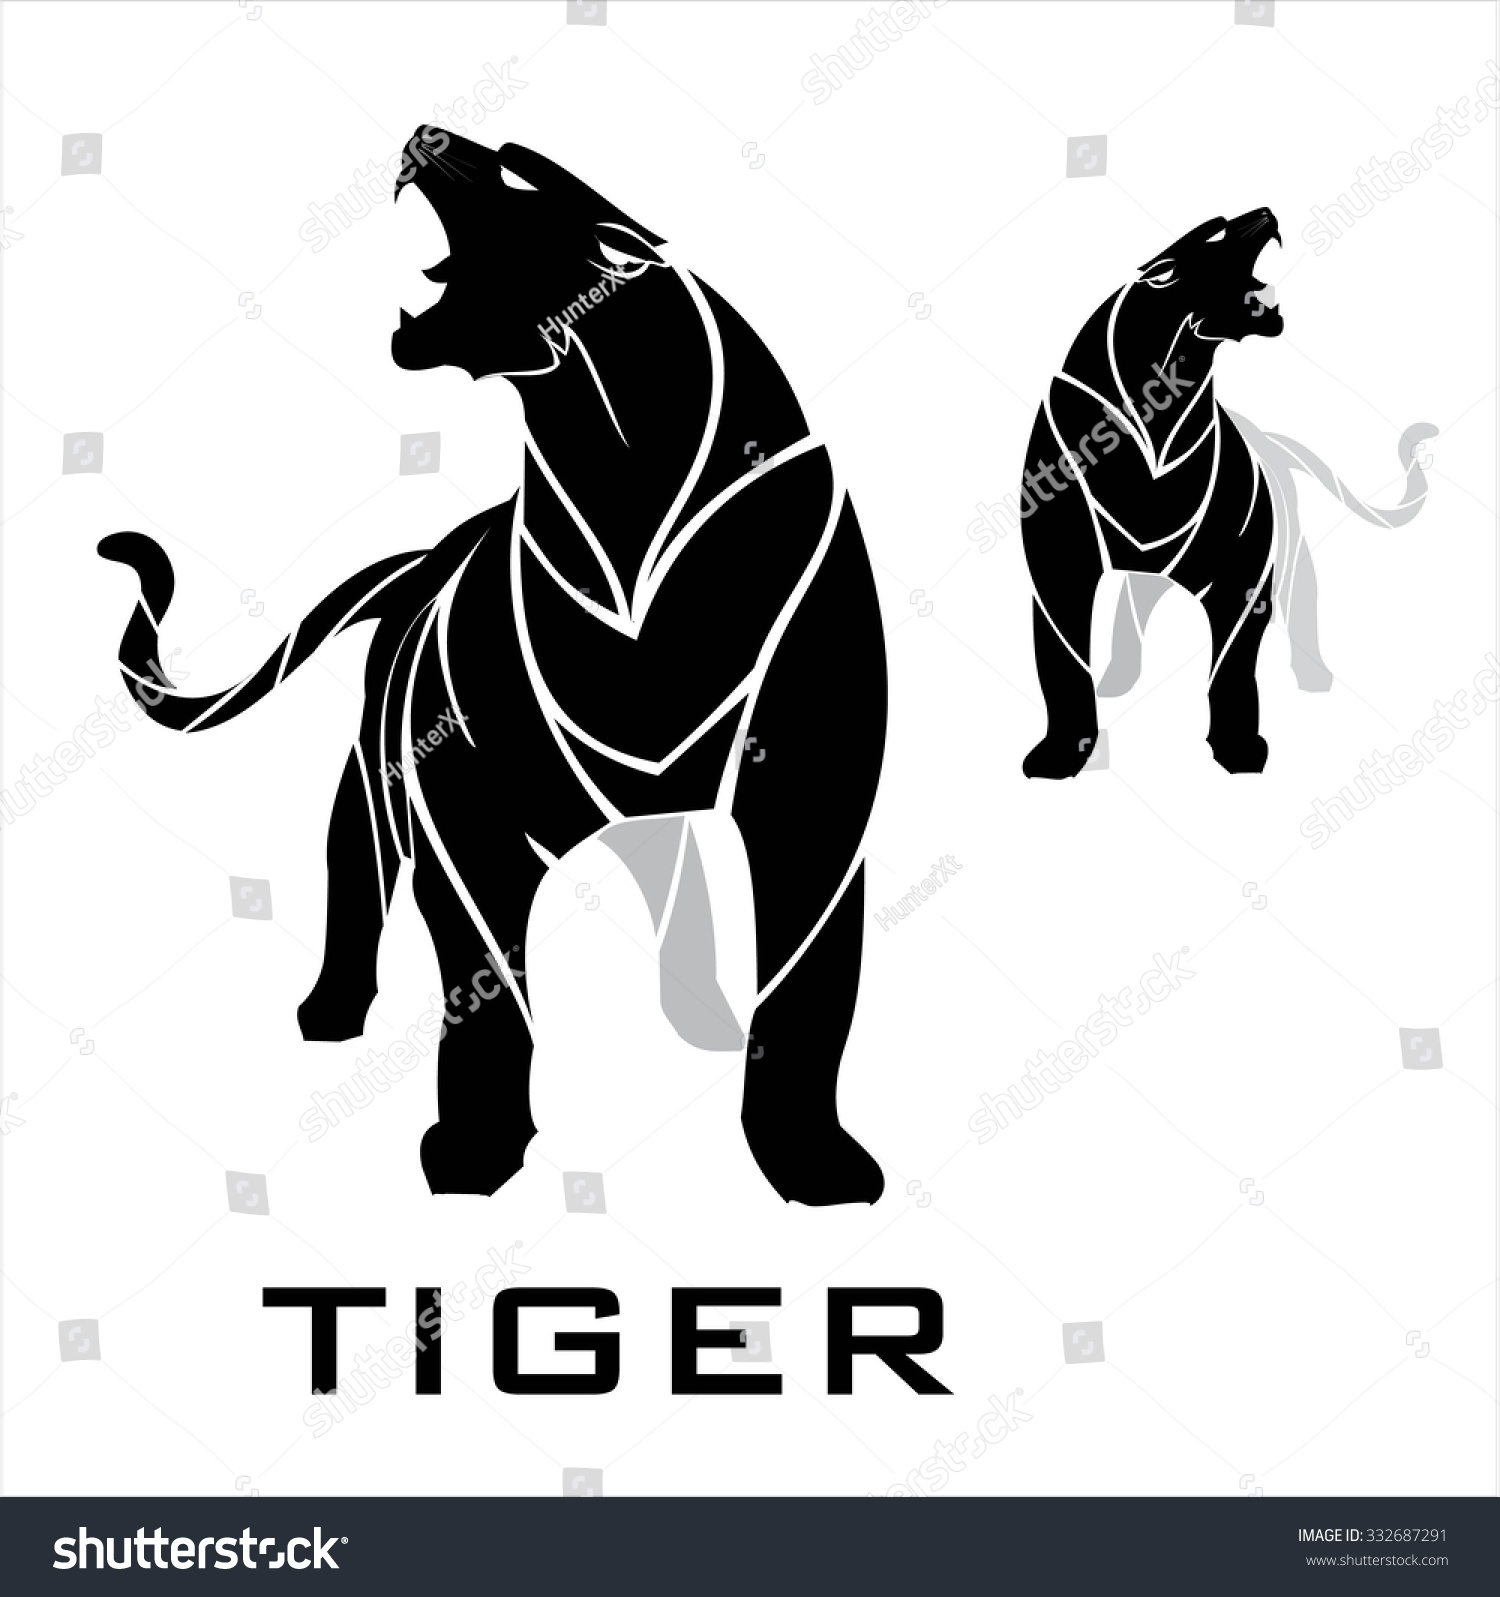 Tiger roar vector - photo#16